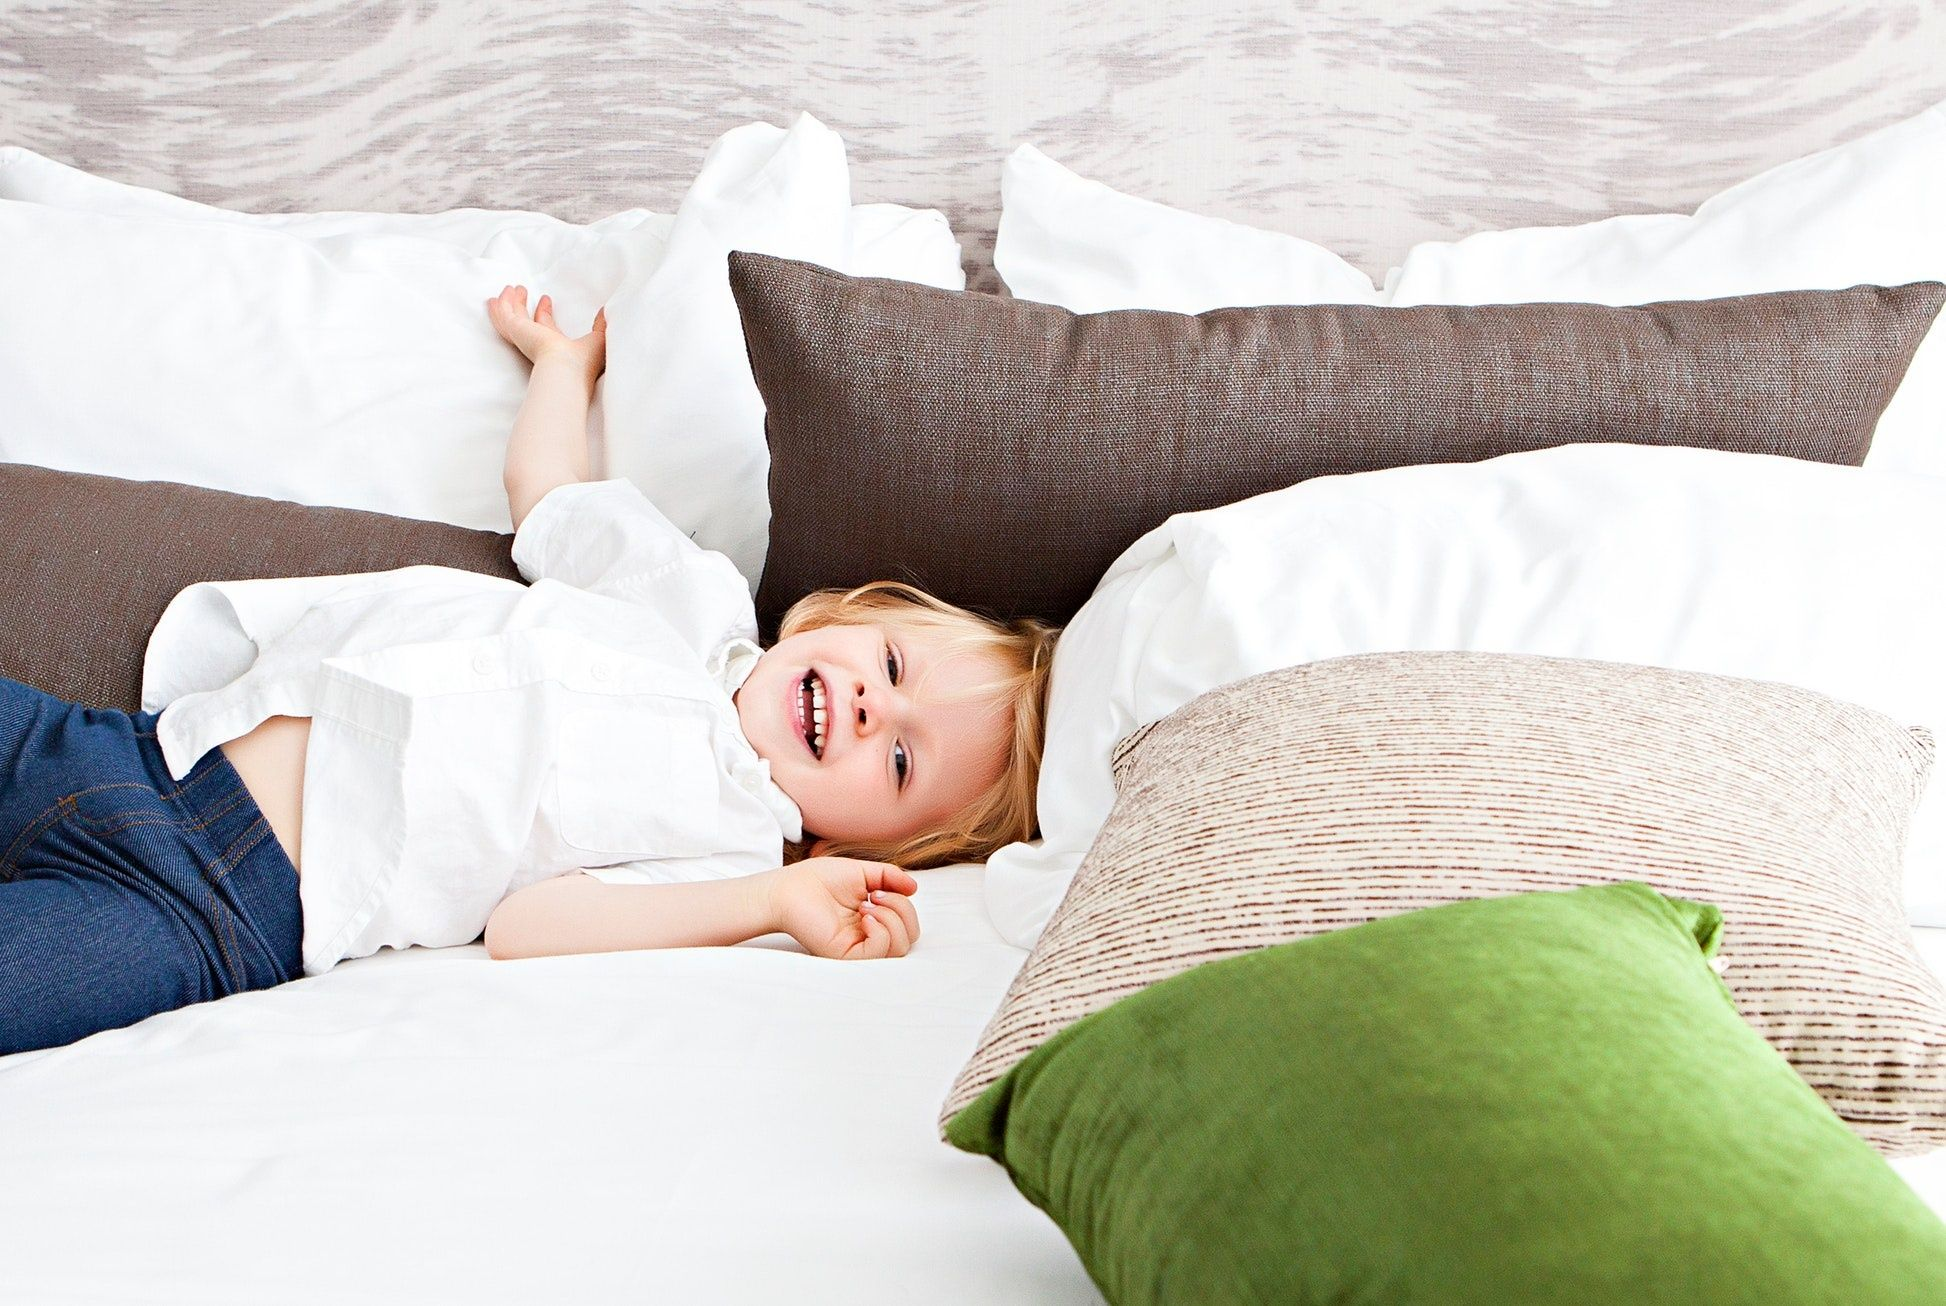 Bamboo Vs Cotton Bedding Pros And Cons For The Informed Buyer